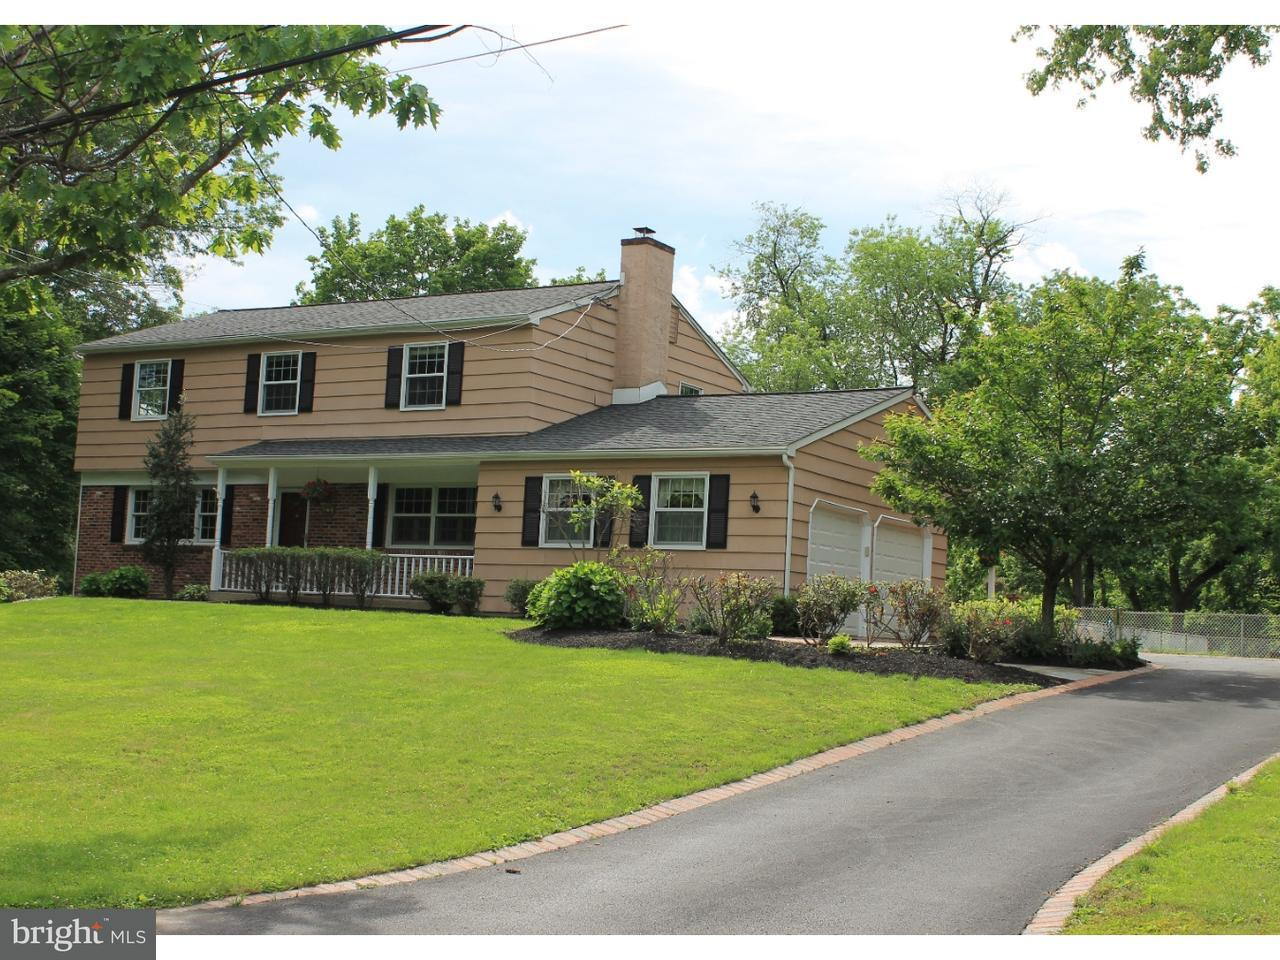 Single Family Home for Rent at 90 PEBBLE VALLEY Drive Doylestown, Pennsylvania 18901 United States